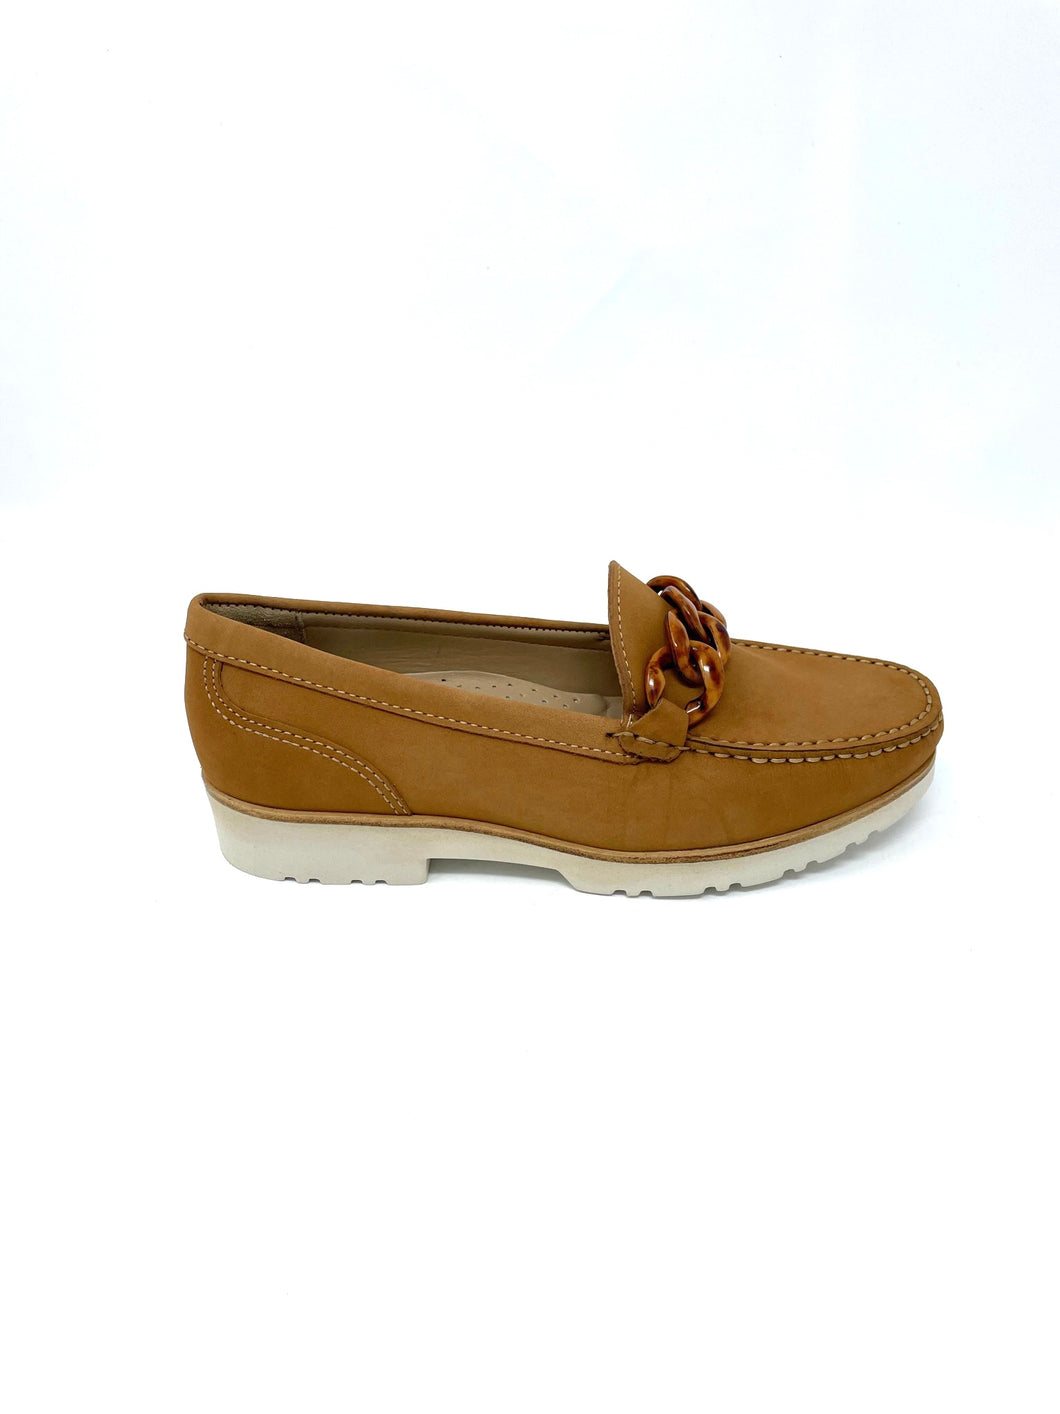 Lisa Kay Tan Loafers